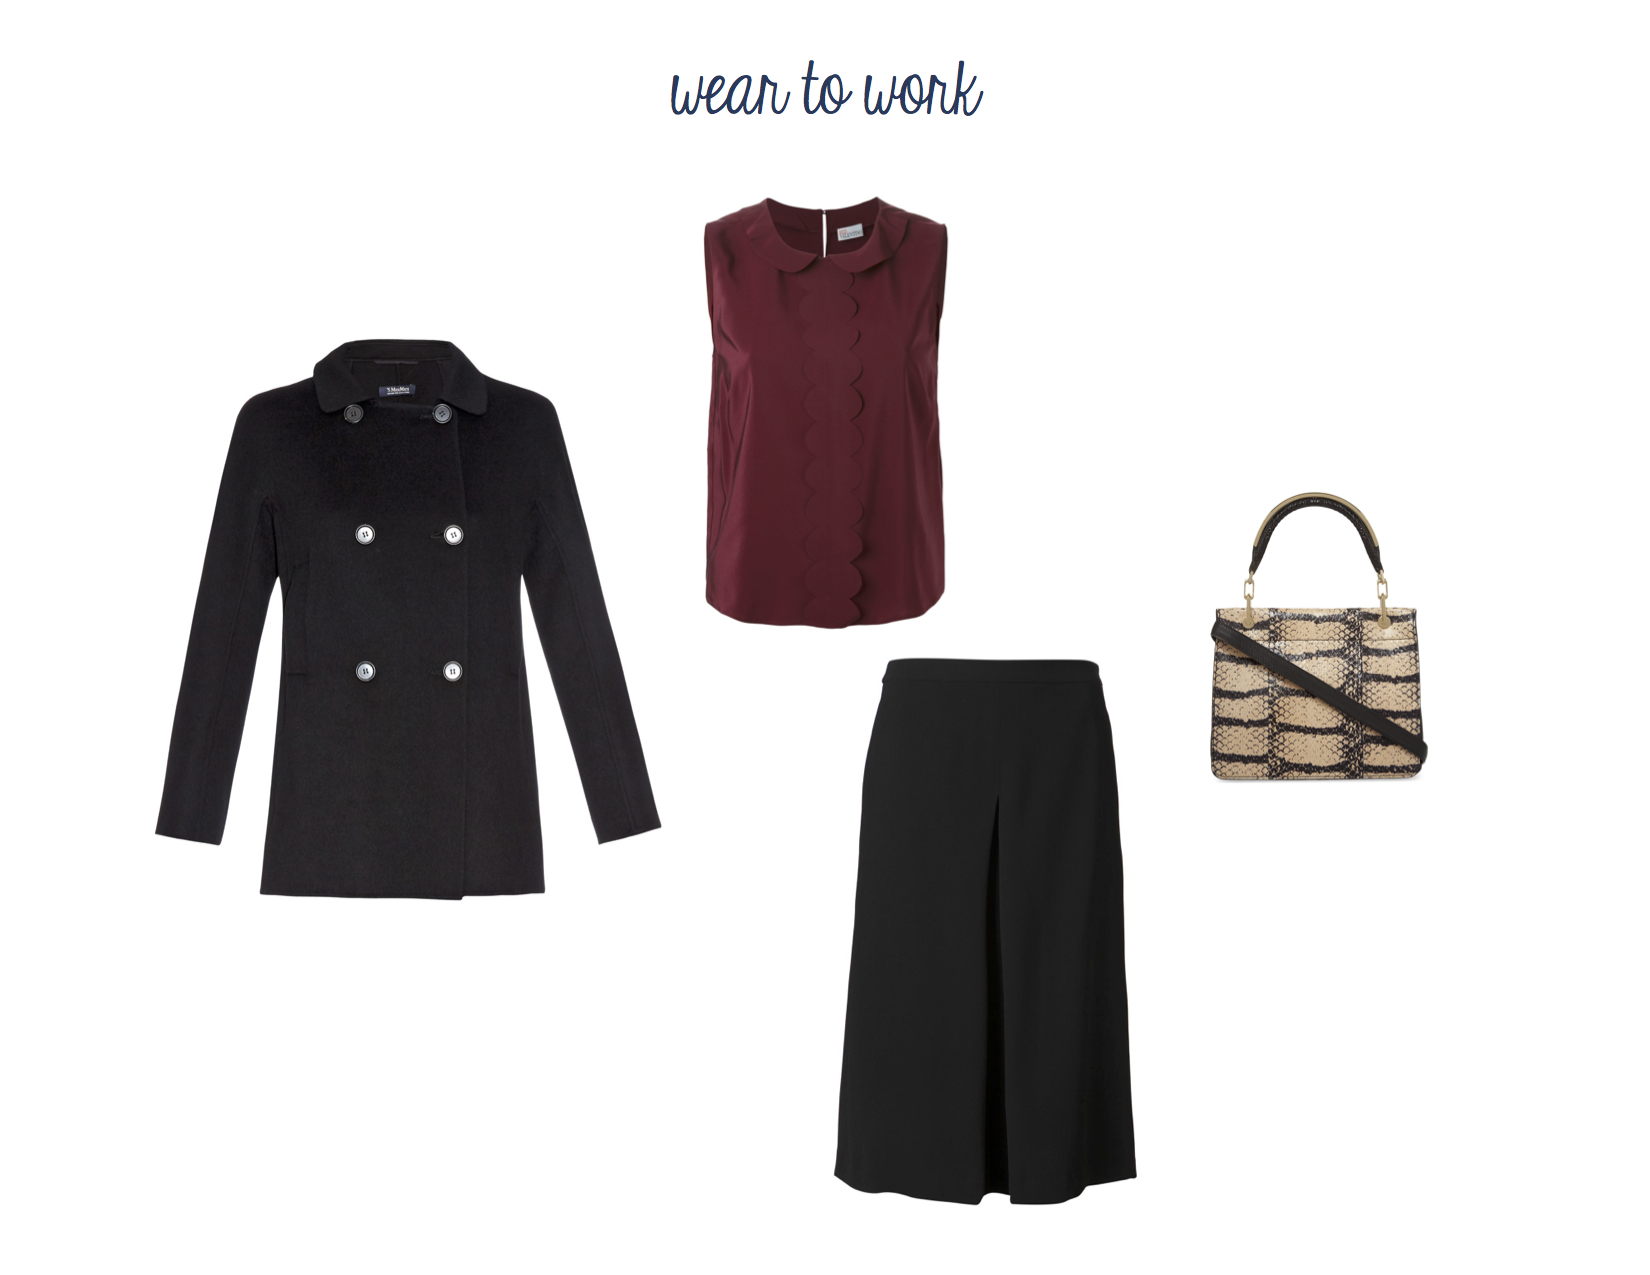 From Left to Right: Max Mara Lettera Jacket, RED Valentino Scalloped Silk Top, Vince Culottes and Max Mara Leda Bag.